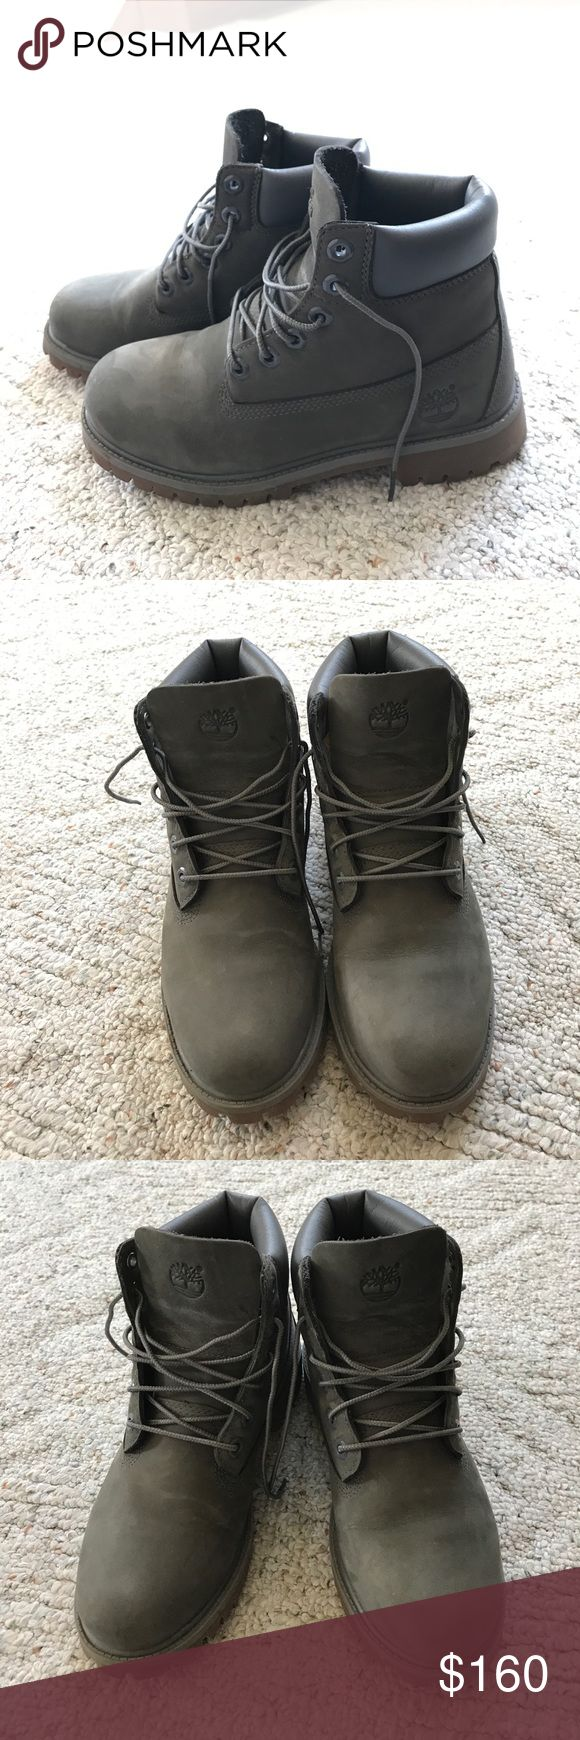 Gray Timberlands Gray Woman's Timberline boots. Worn once in perfect condition Timberland Shoes Lace Up Boots